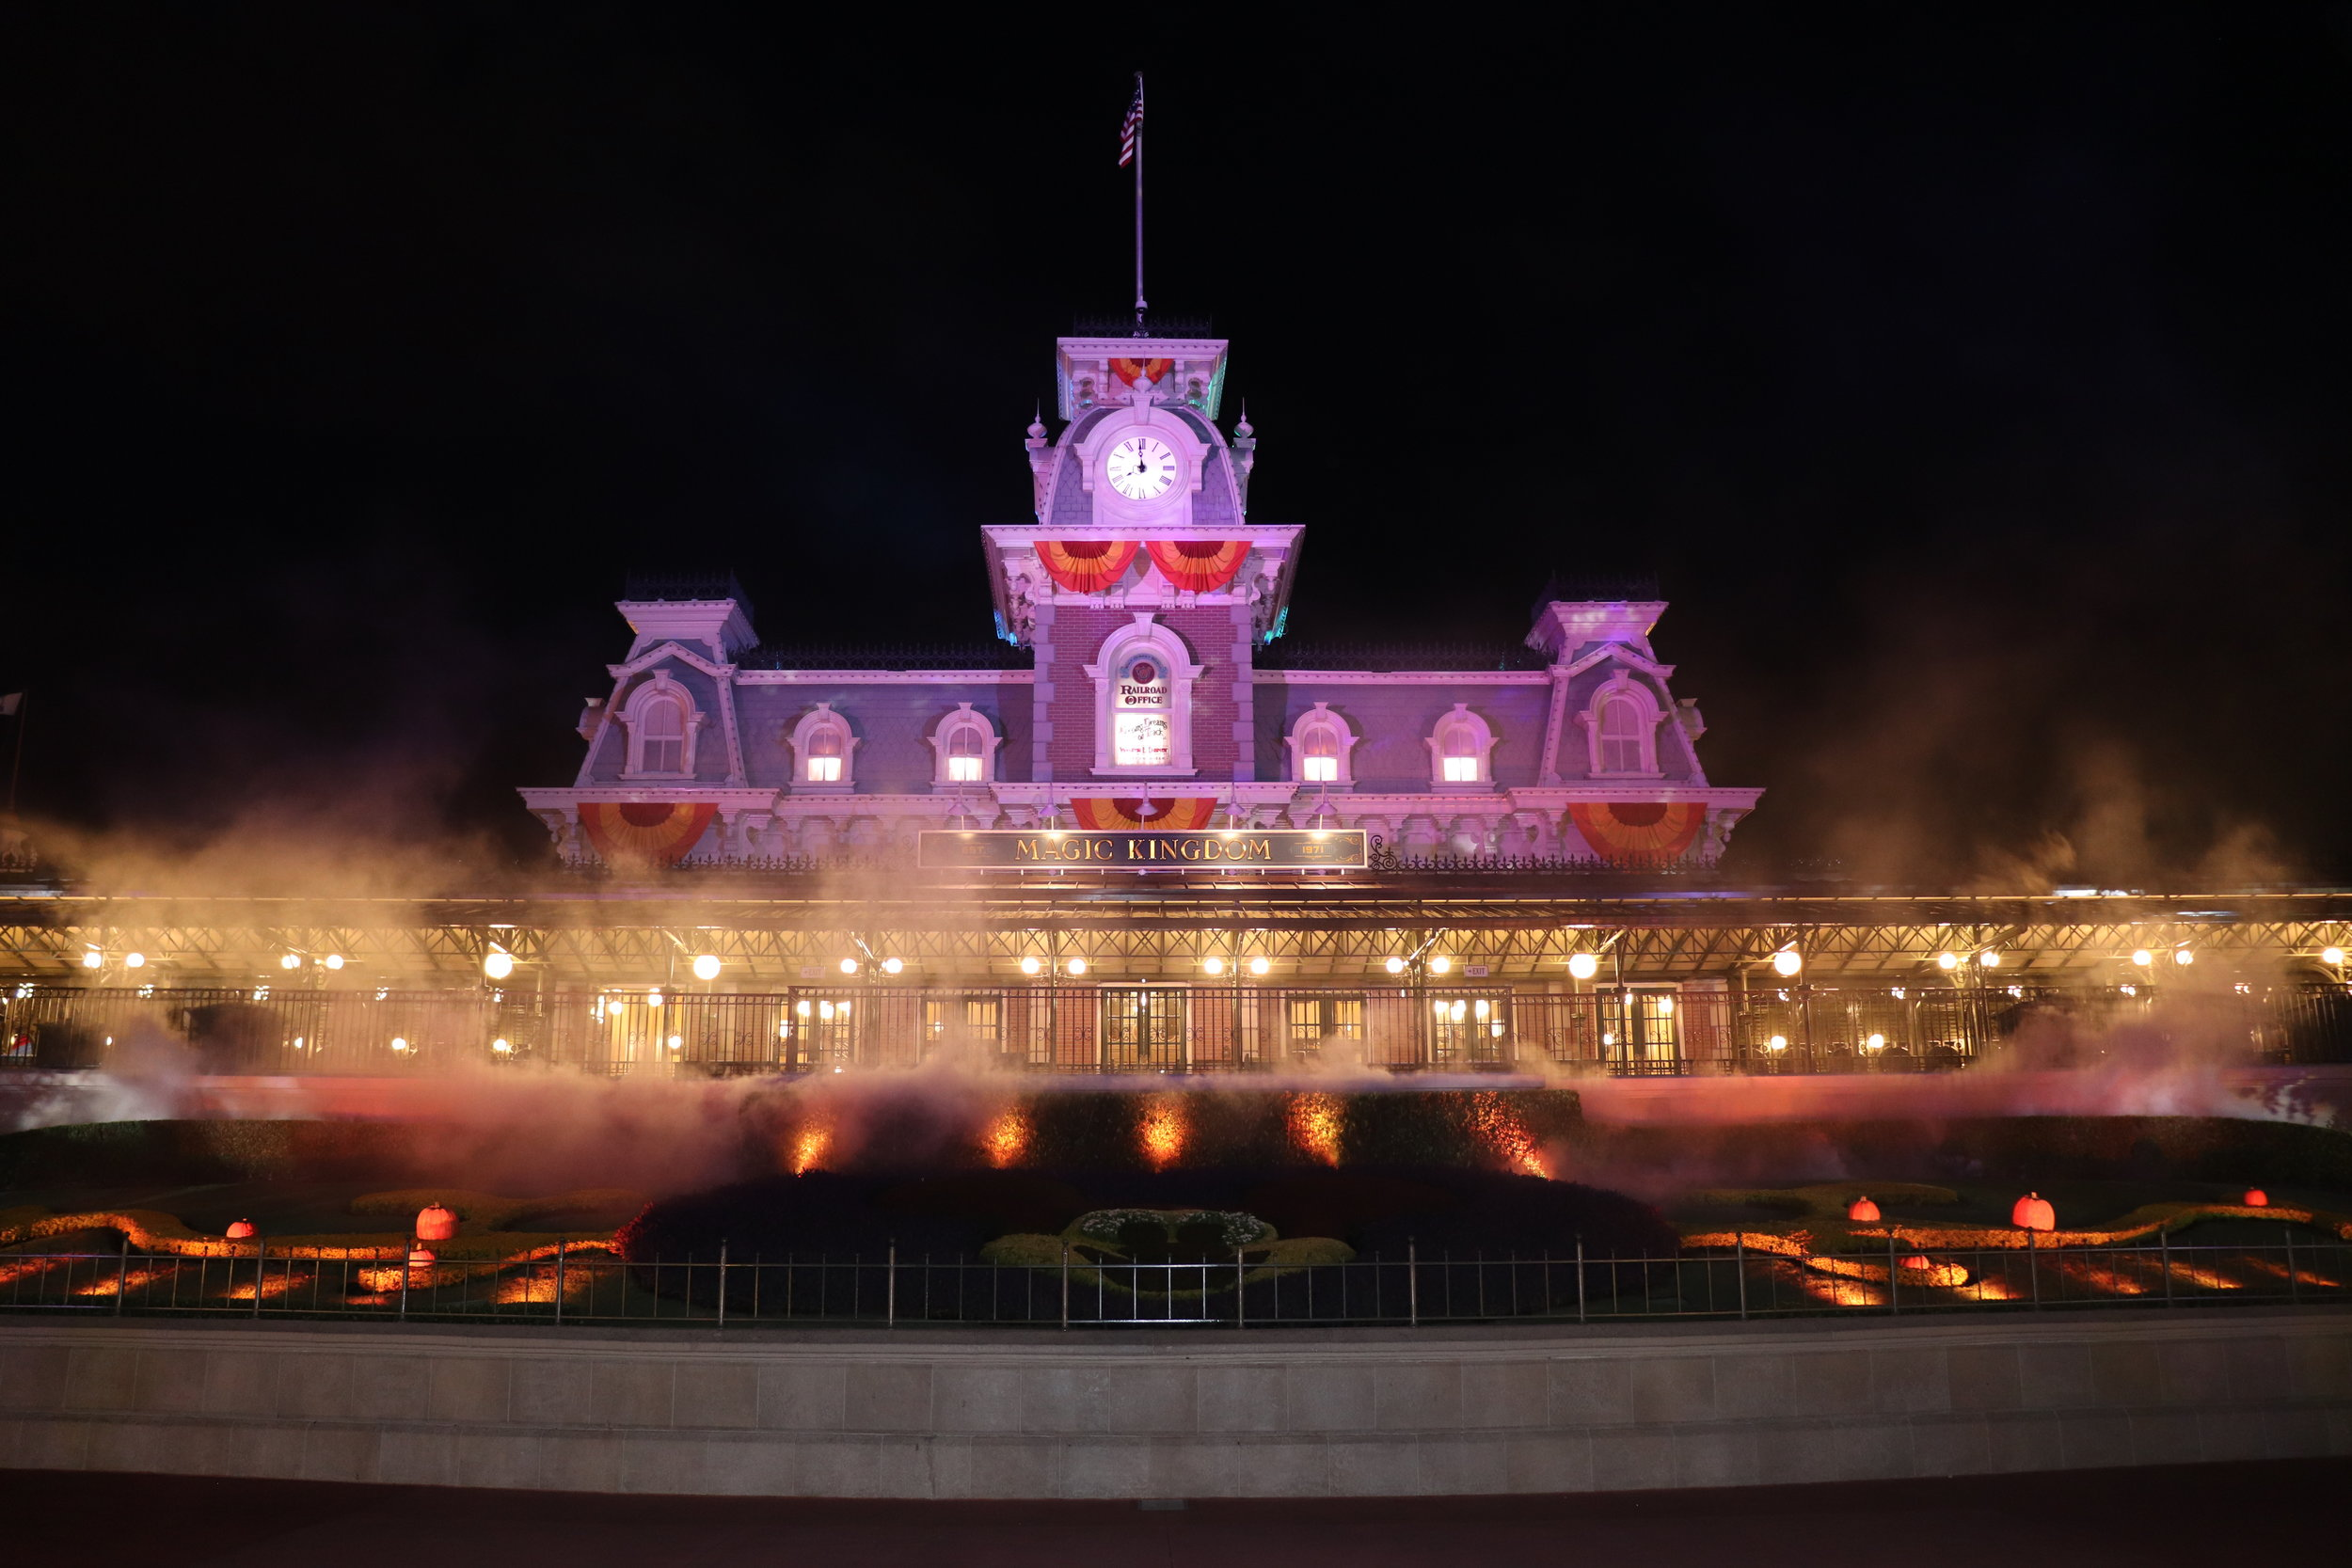 The Main Street Train Station looks particularly eerie with the fog and orange lighting.